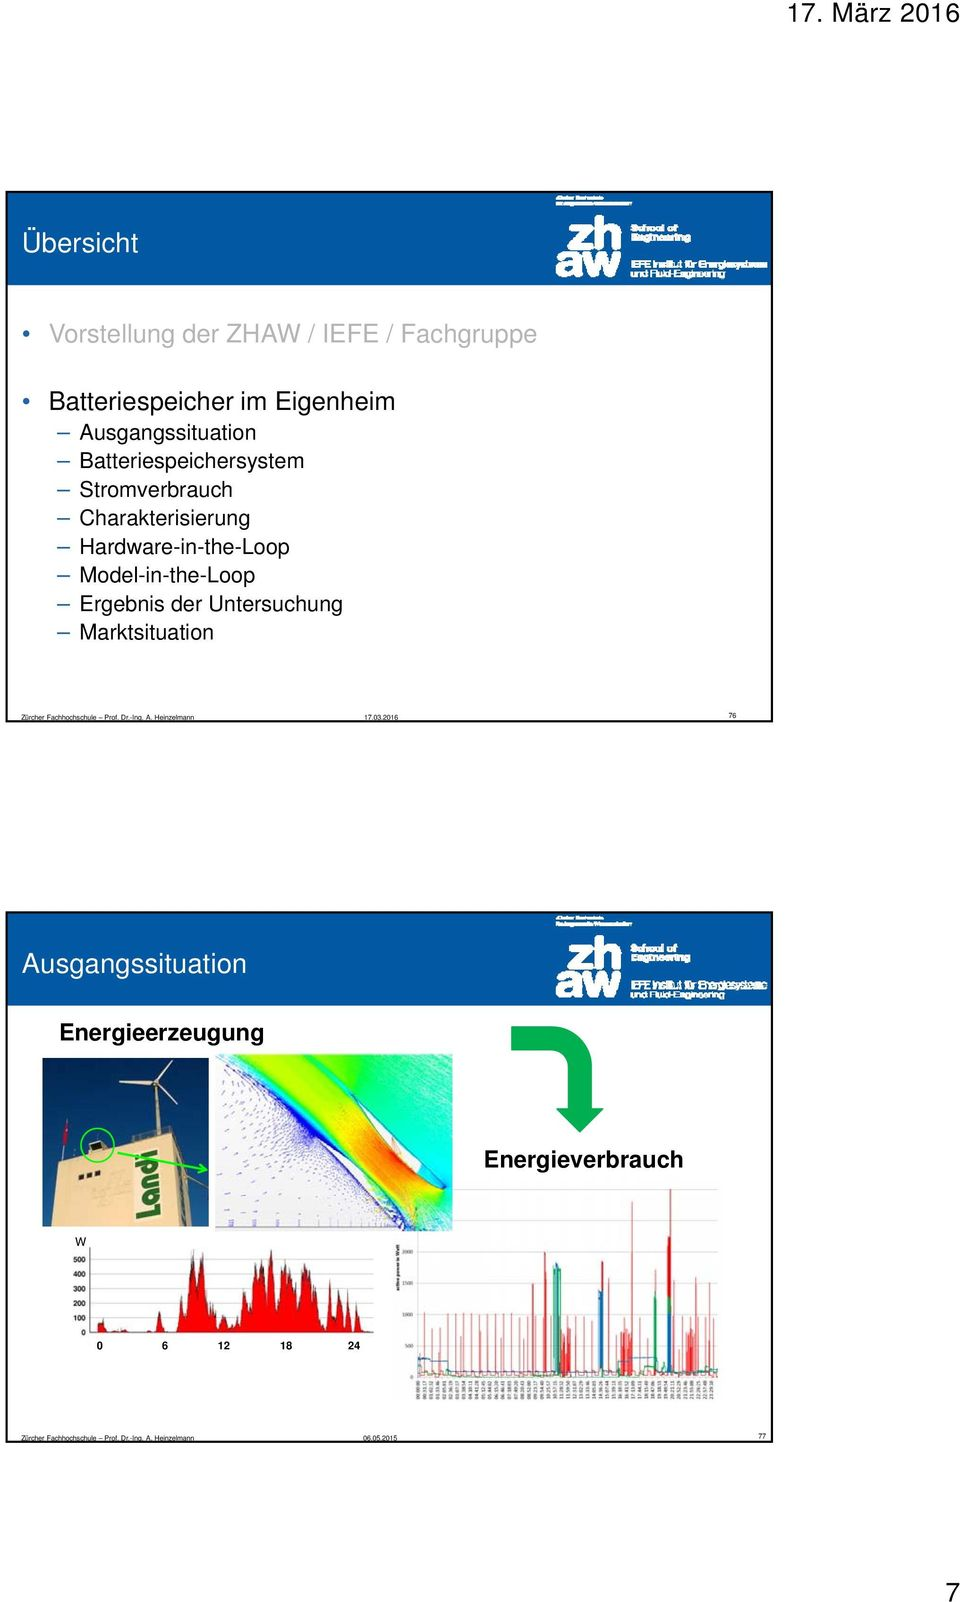 Charakterisierung Hardware-in-the-Loop Model-in-the-Loop Ergebnis der